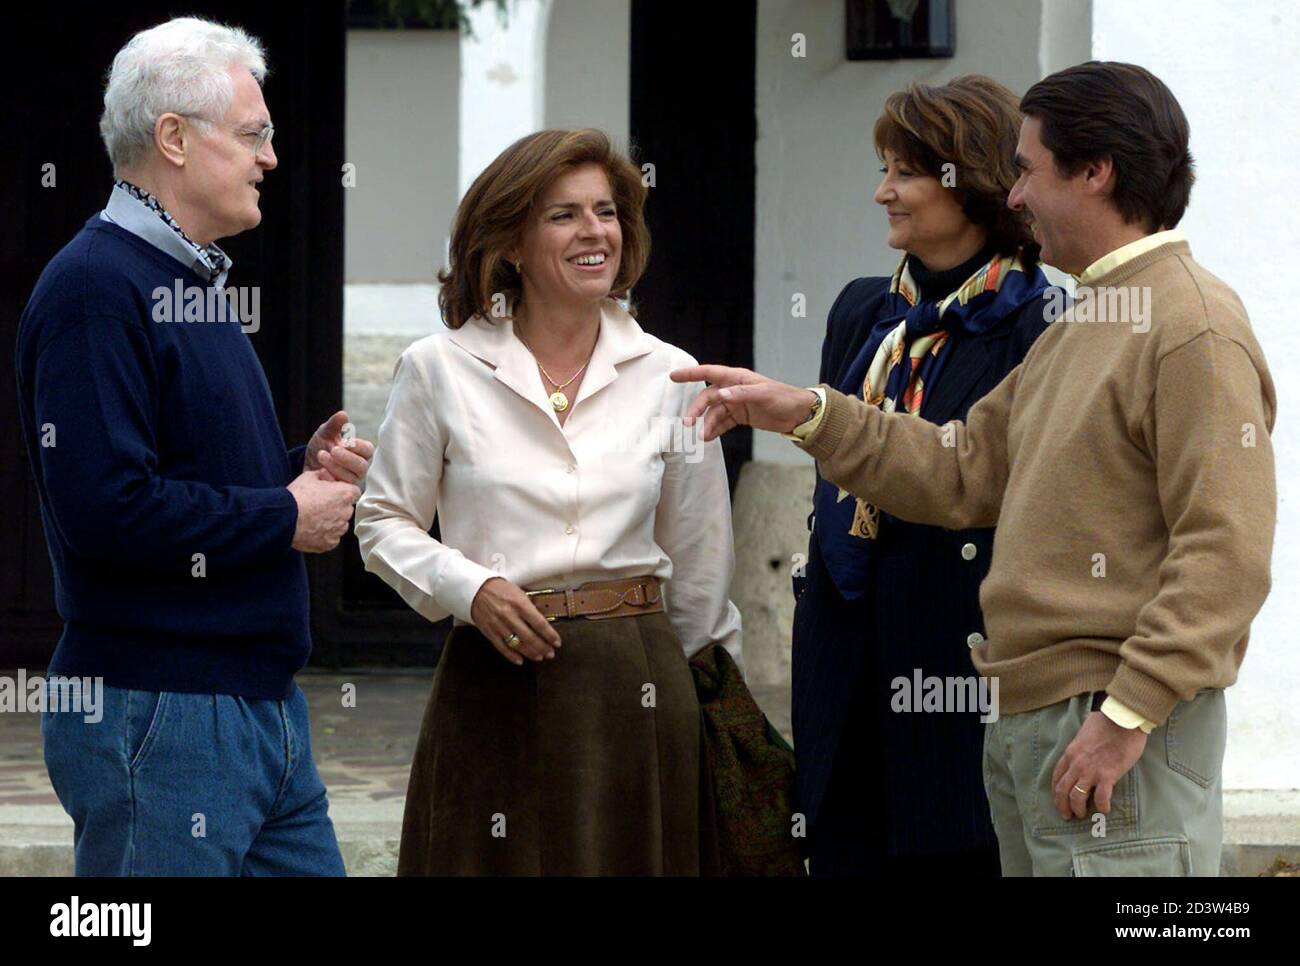 Spanish Prime Minister Jose Maria Aznar (R) talks with his French counterpart Lionel Jospin (L) as they pose with their wives Ana Botella (2nd L) and Silian Jospin before their meeting at Quintos de Mora near Madrid May 5, 2001. Jospin is Spain for a two-day private visit.  SP Stock Photo